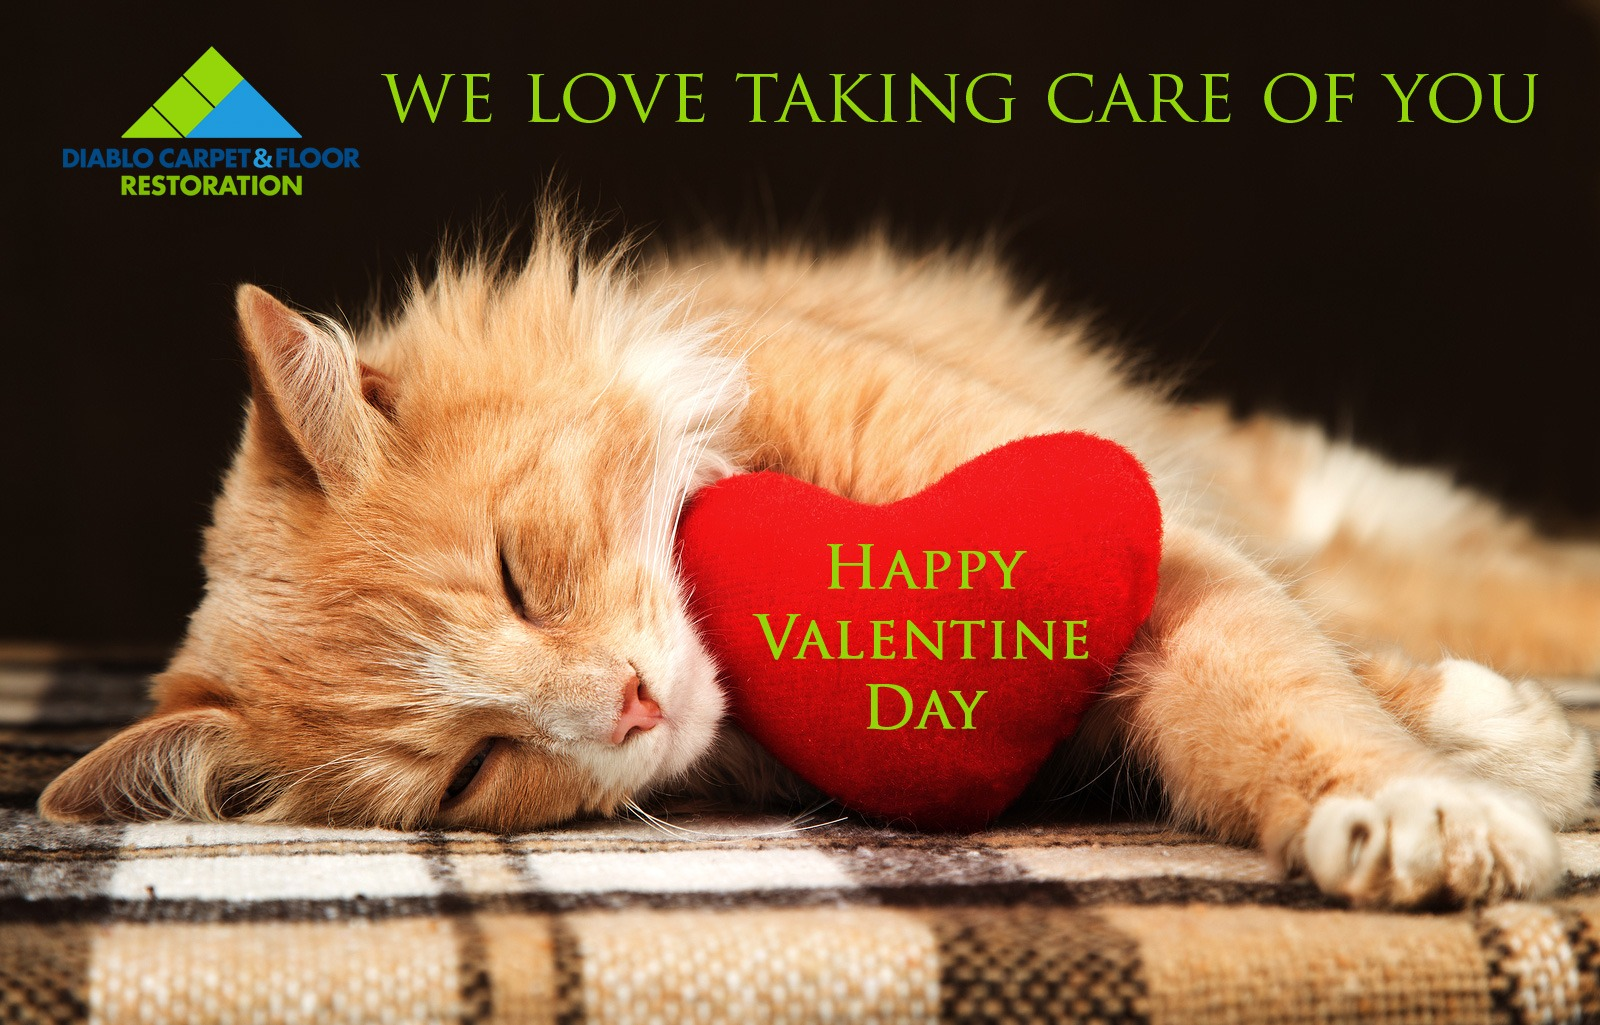 Happy Valentine's Day from Diablo Carpet and Flooring Restoration